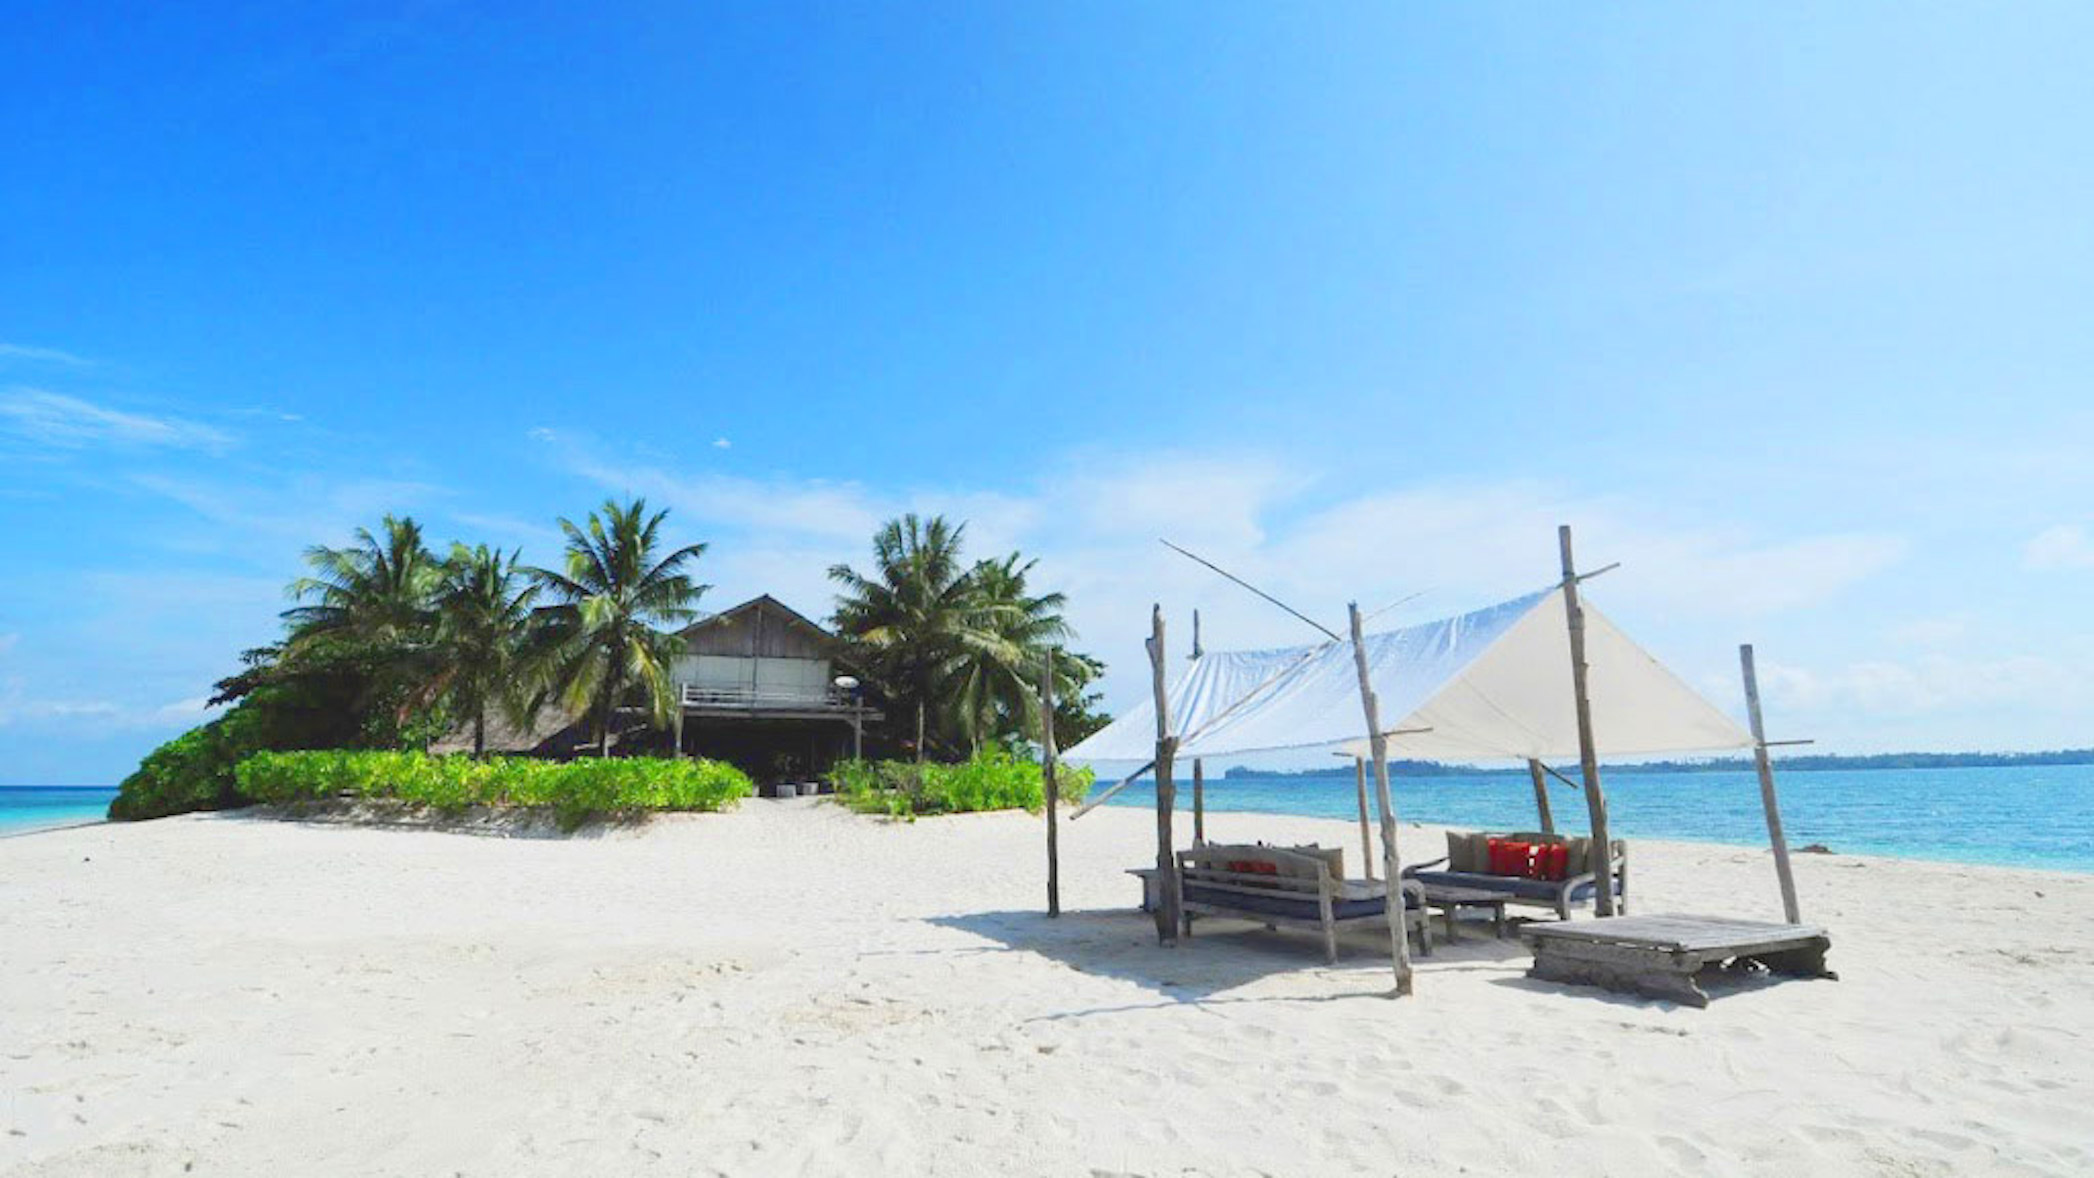 Private island for rent: Pulau Pangkil